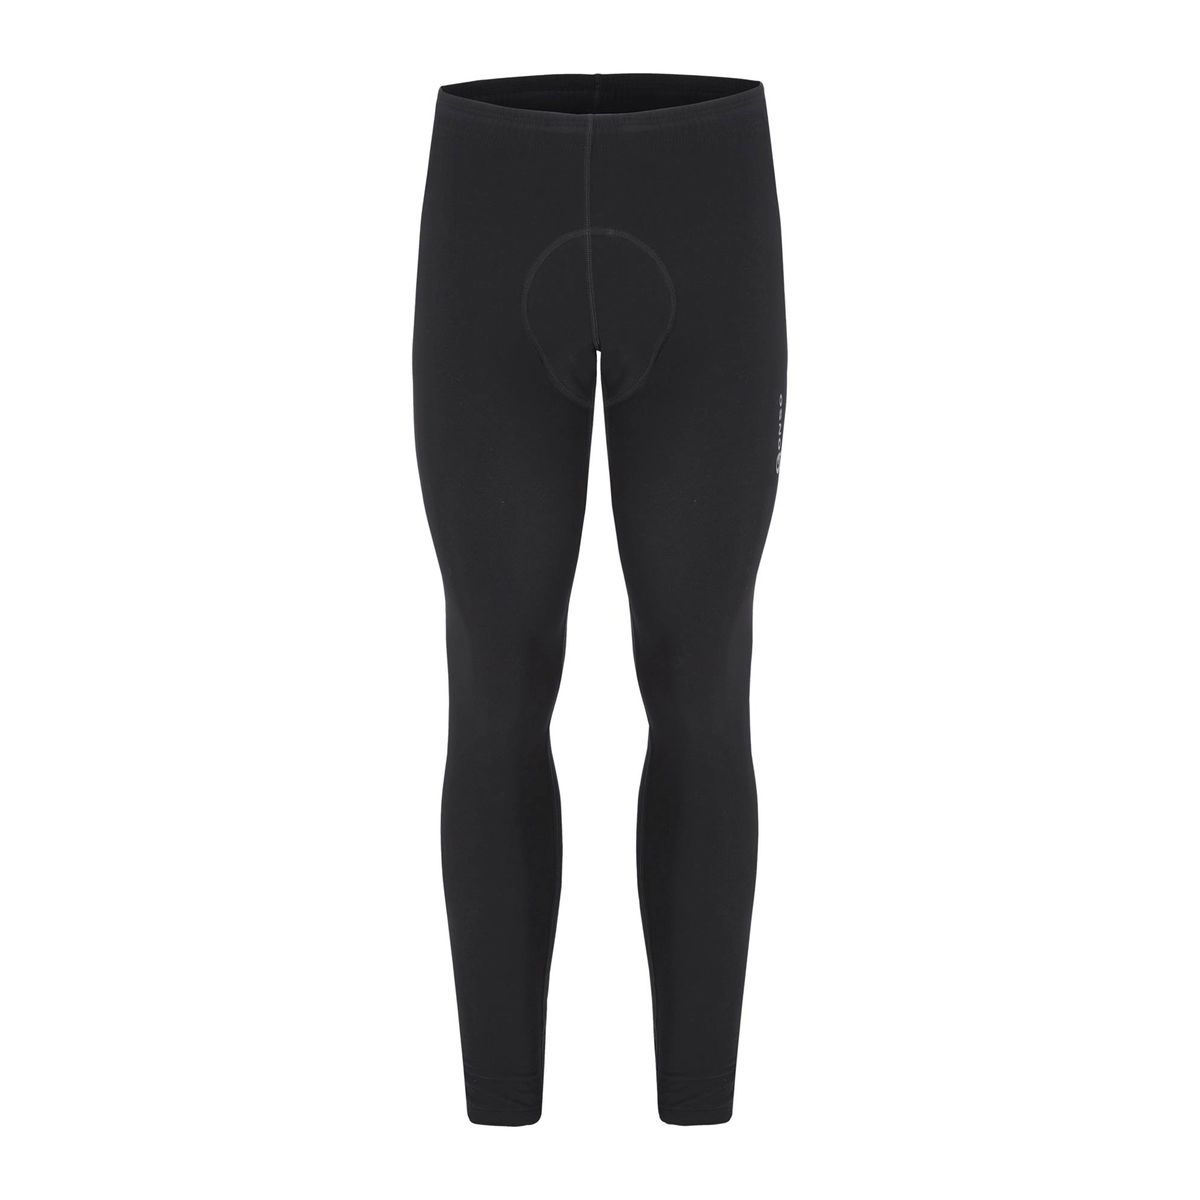 IKARIA cycling tights